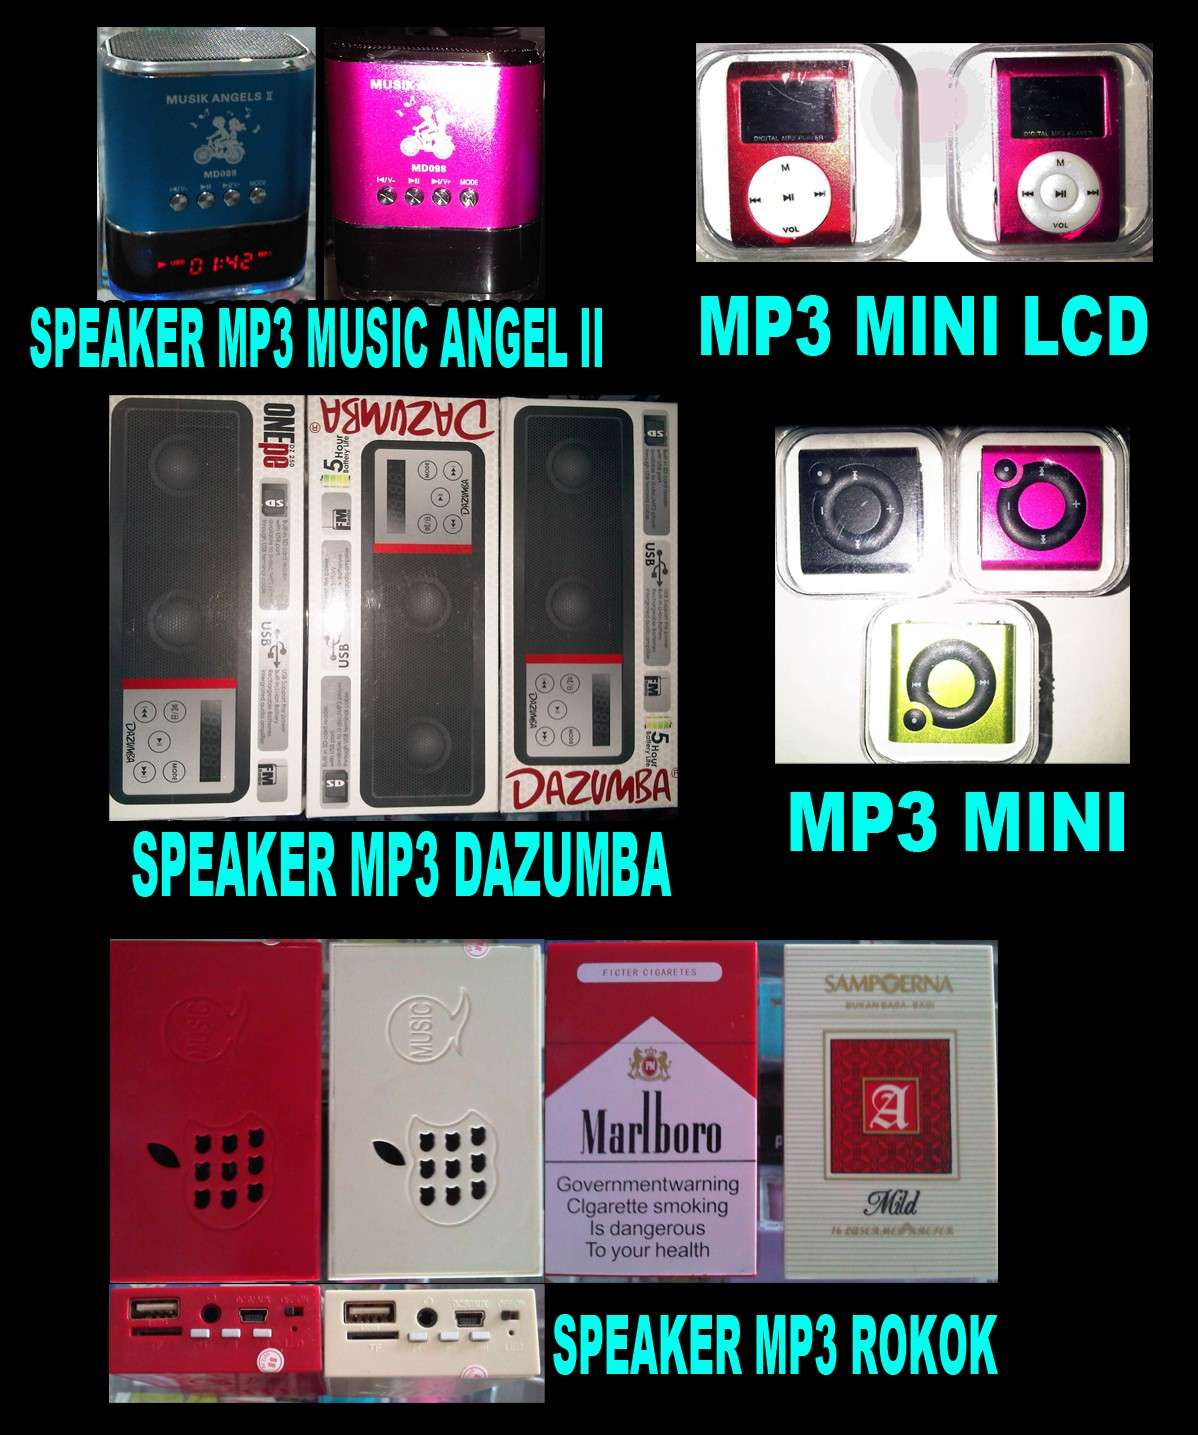 MP3 MINI / MP3 PORTABLE SPEAKER